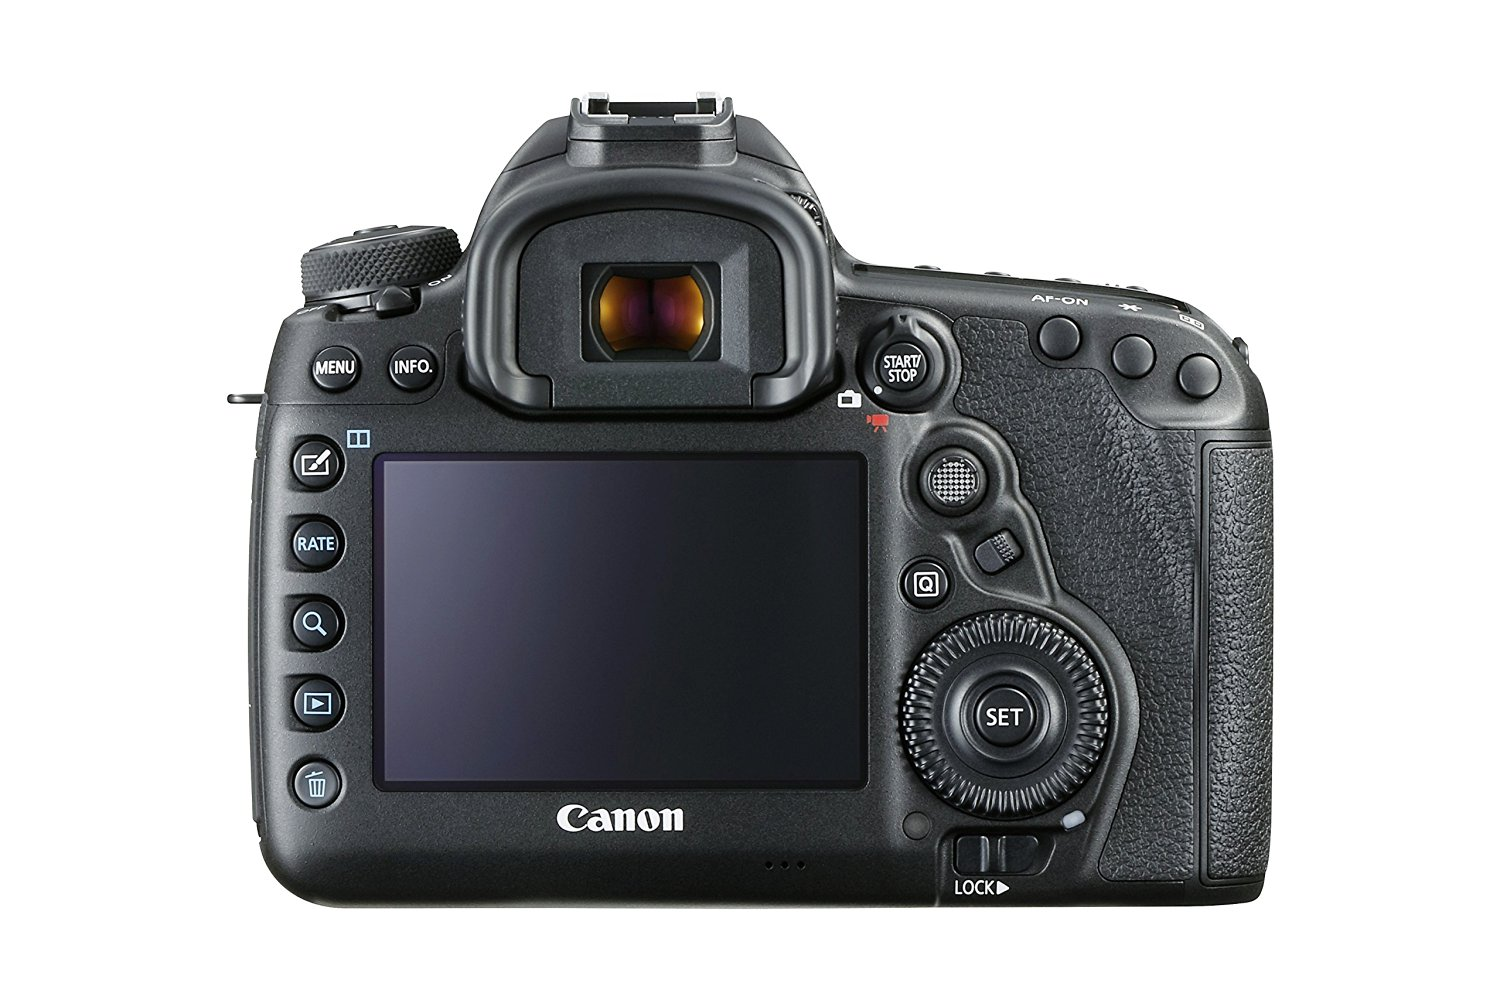 canon 5d miii vs canon 5d miv features image